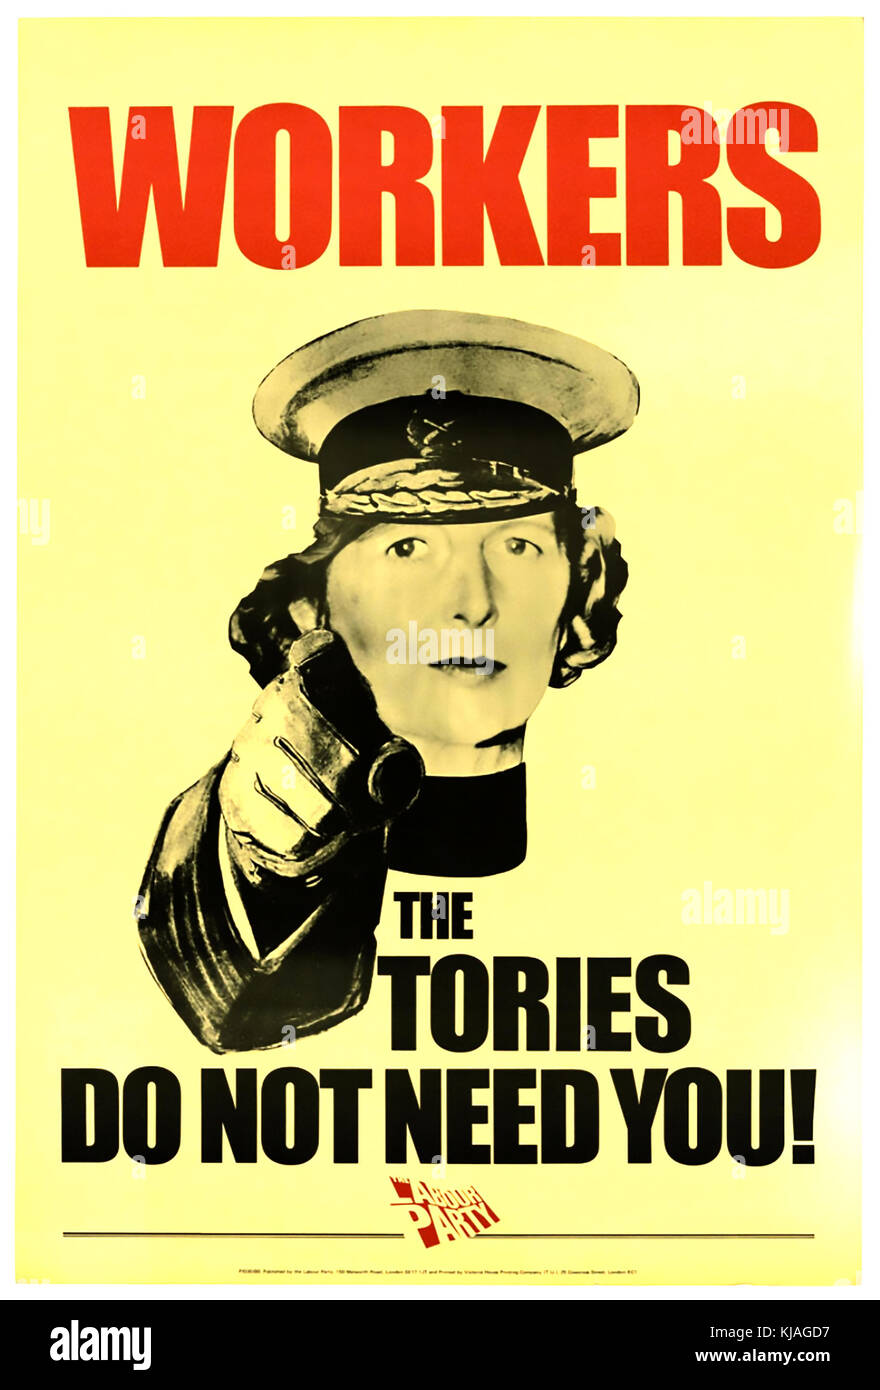 WORKERS THE TORIES DO NOT NEED YOU - 1980 Labour Party poster with Margaret Thatcher styled as Lord Kitchener - Stock Image